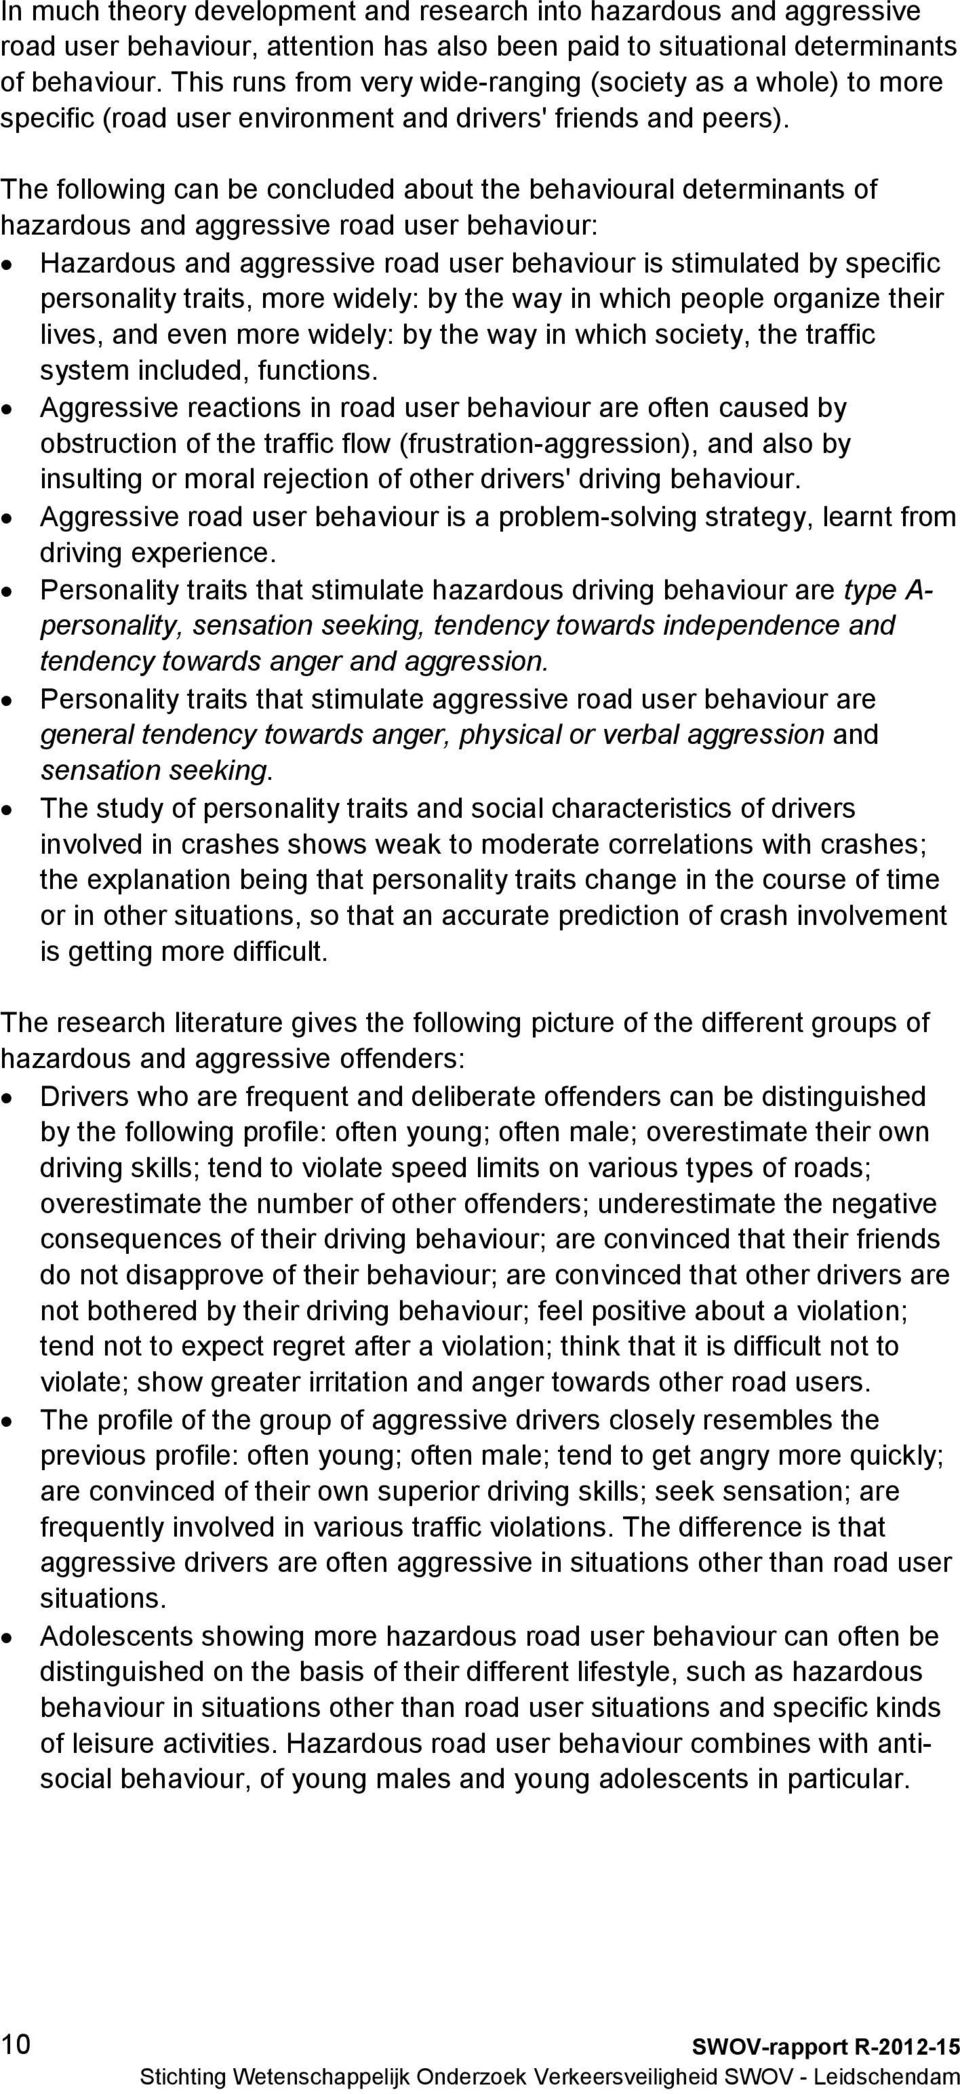 The following can be concluded about the behavioural determinants of hazardous and aggressive road user behaviour: Hazardous and aggressive road user behaviour is stimulated by specific personality